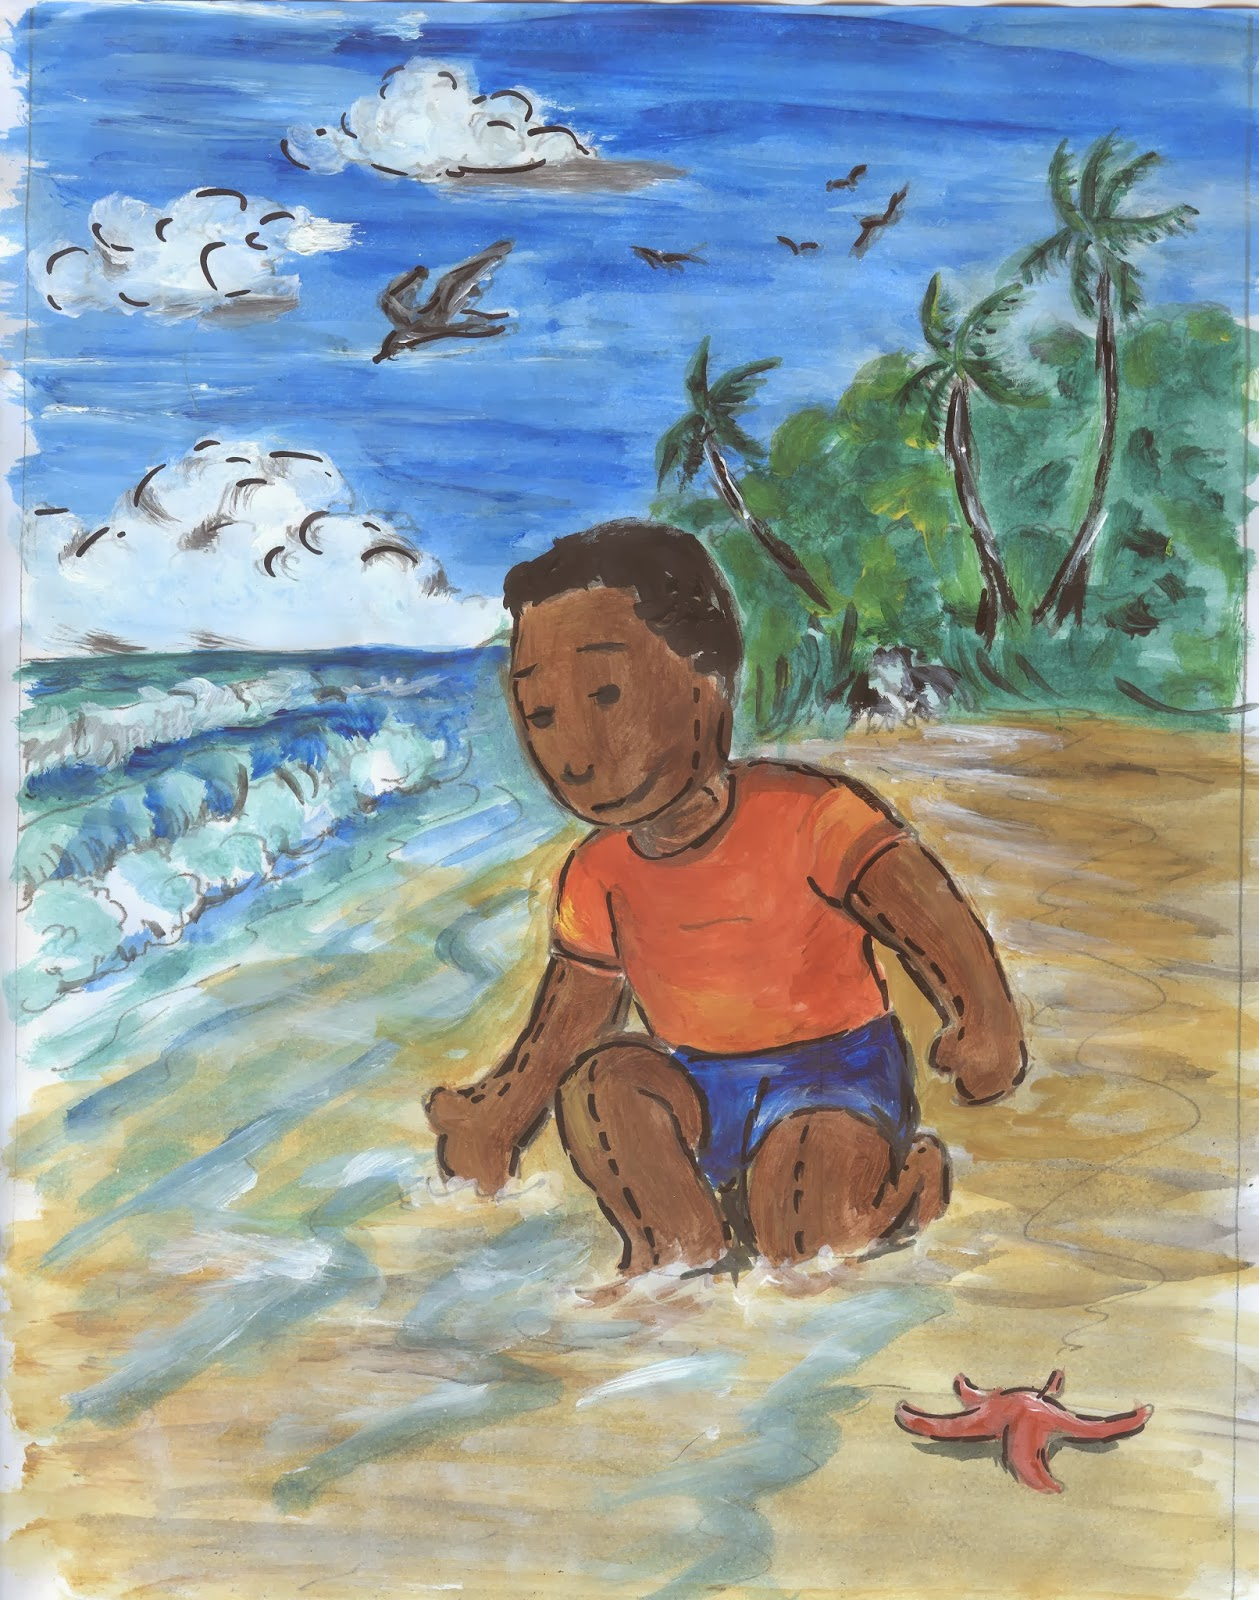 Colour childrens literature - Can A Level Art Translate Into Illustrations For Children S Books Join Me On The Journey